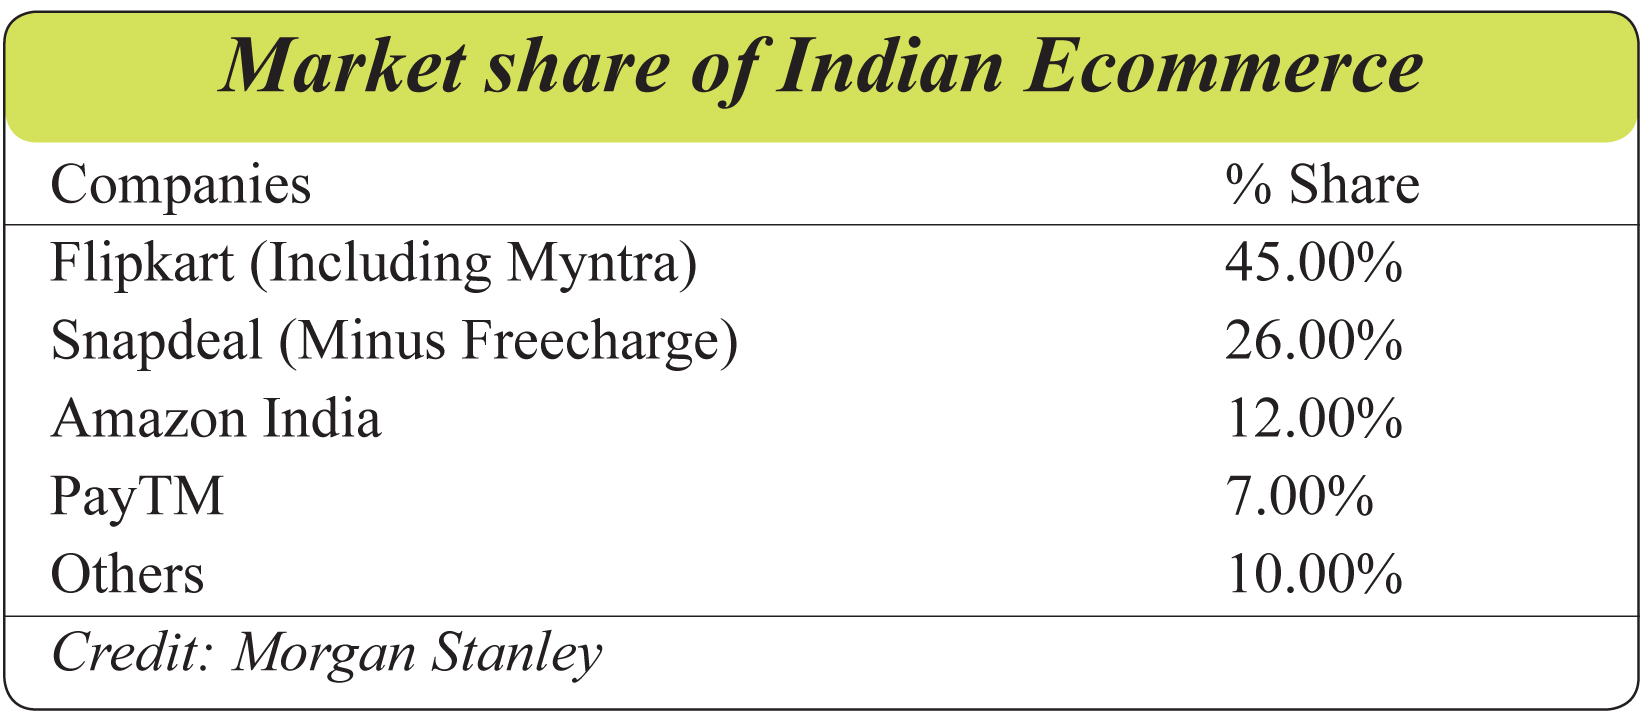 Market share of Indian Ecommerce